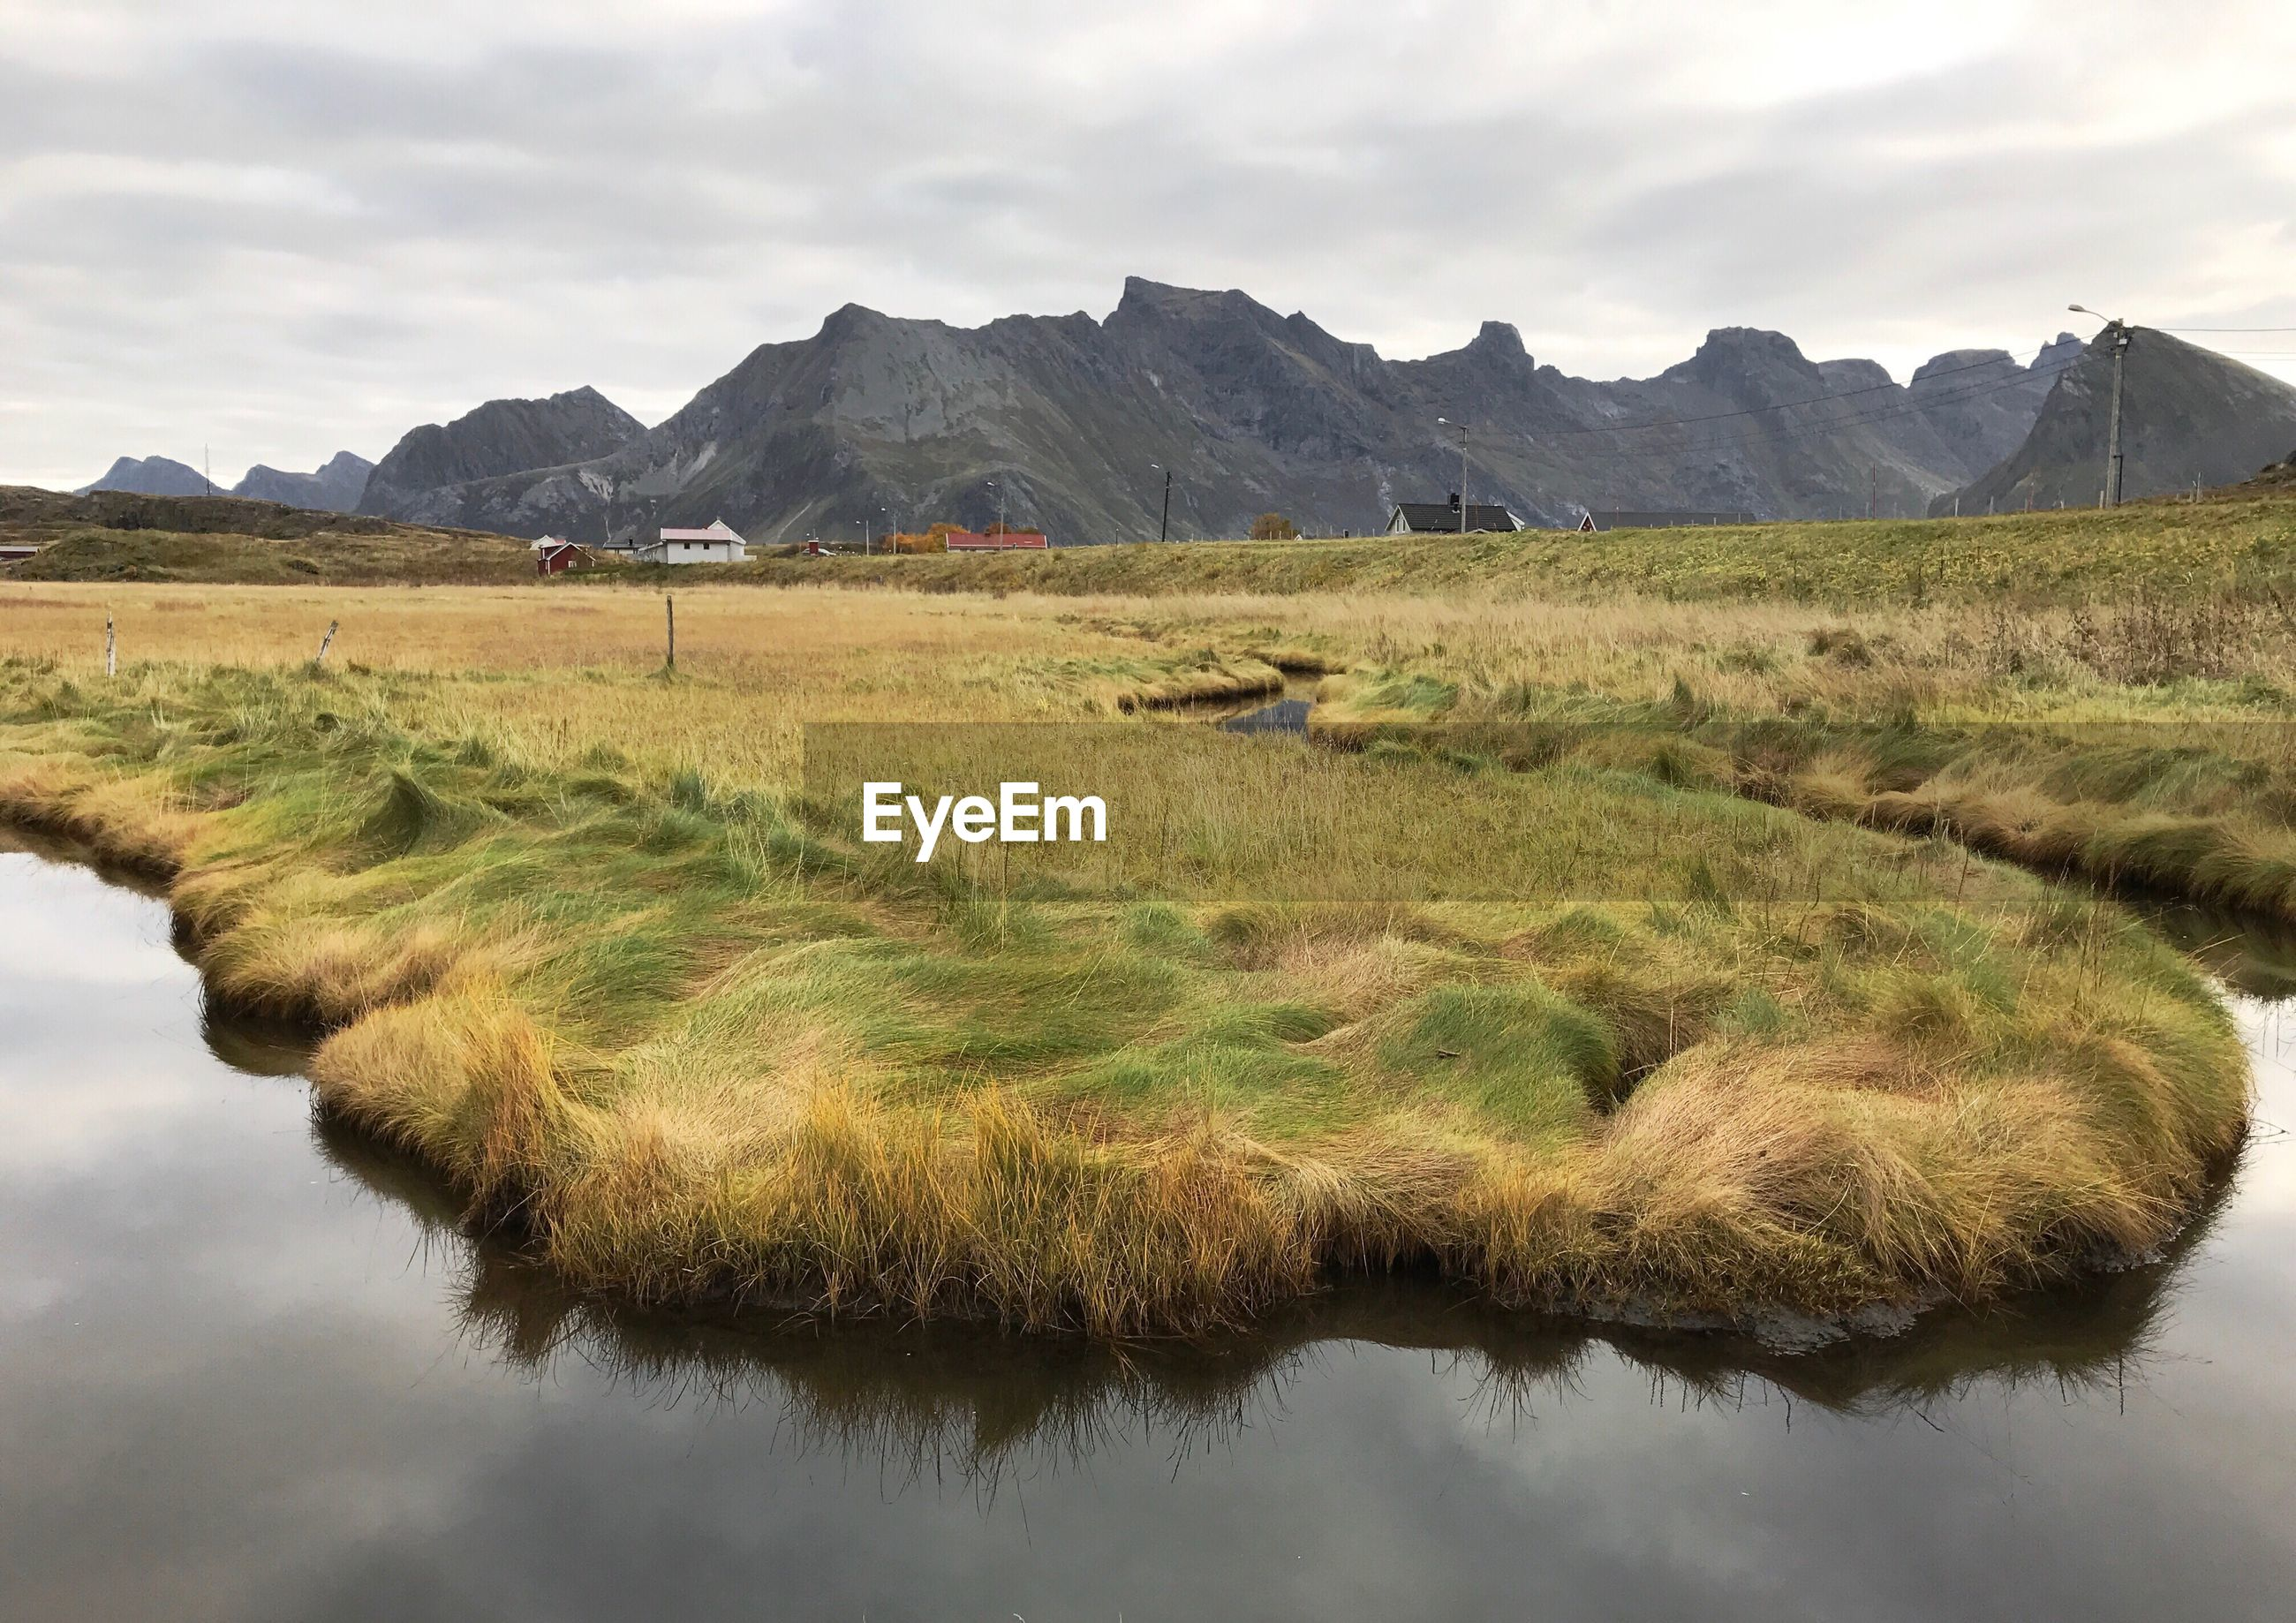 VIEW OF STREAM IN FIELD